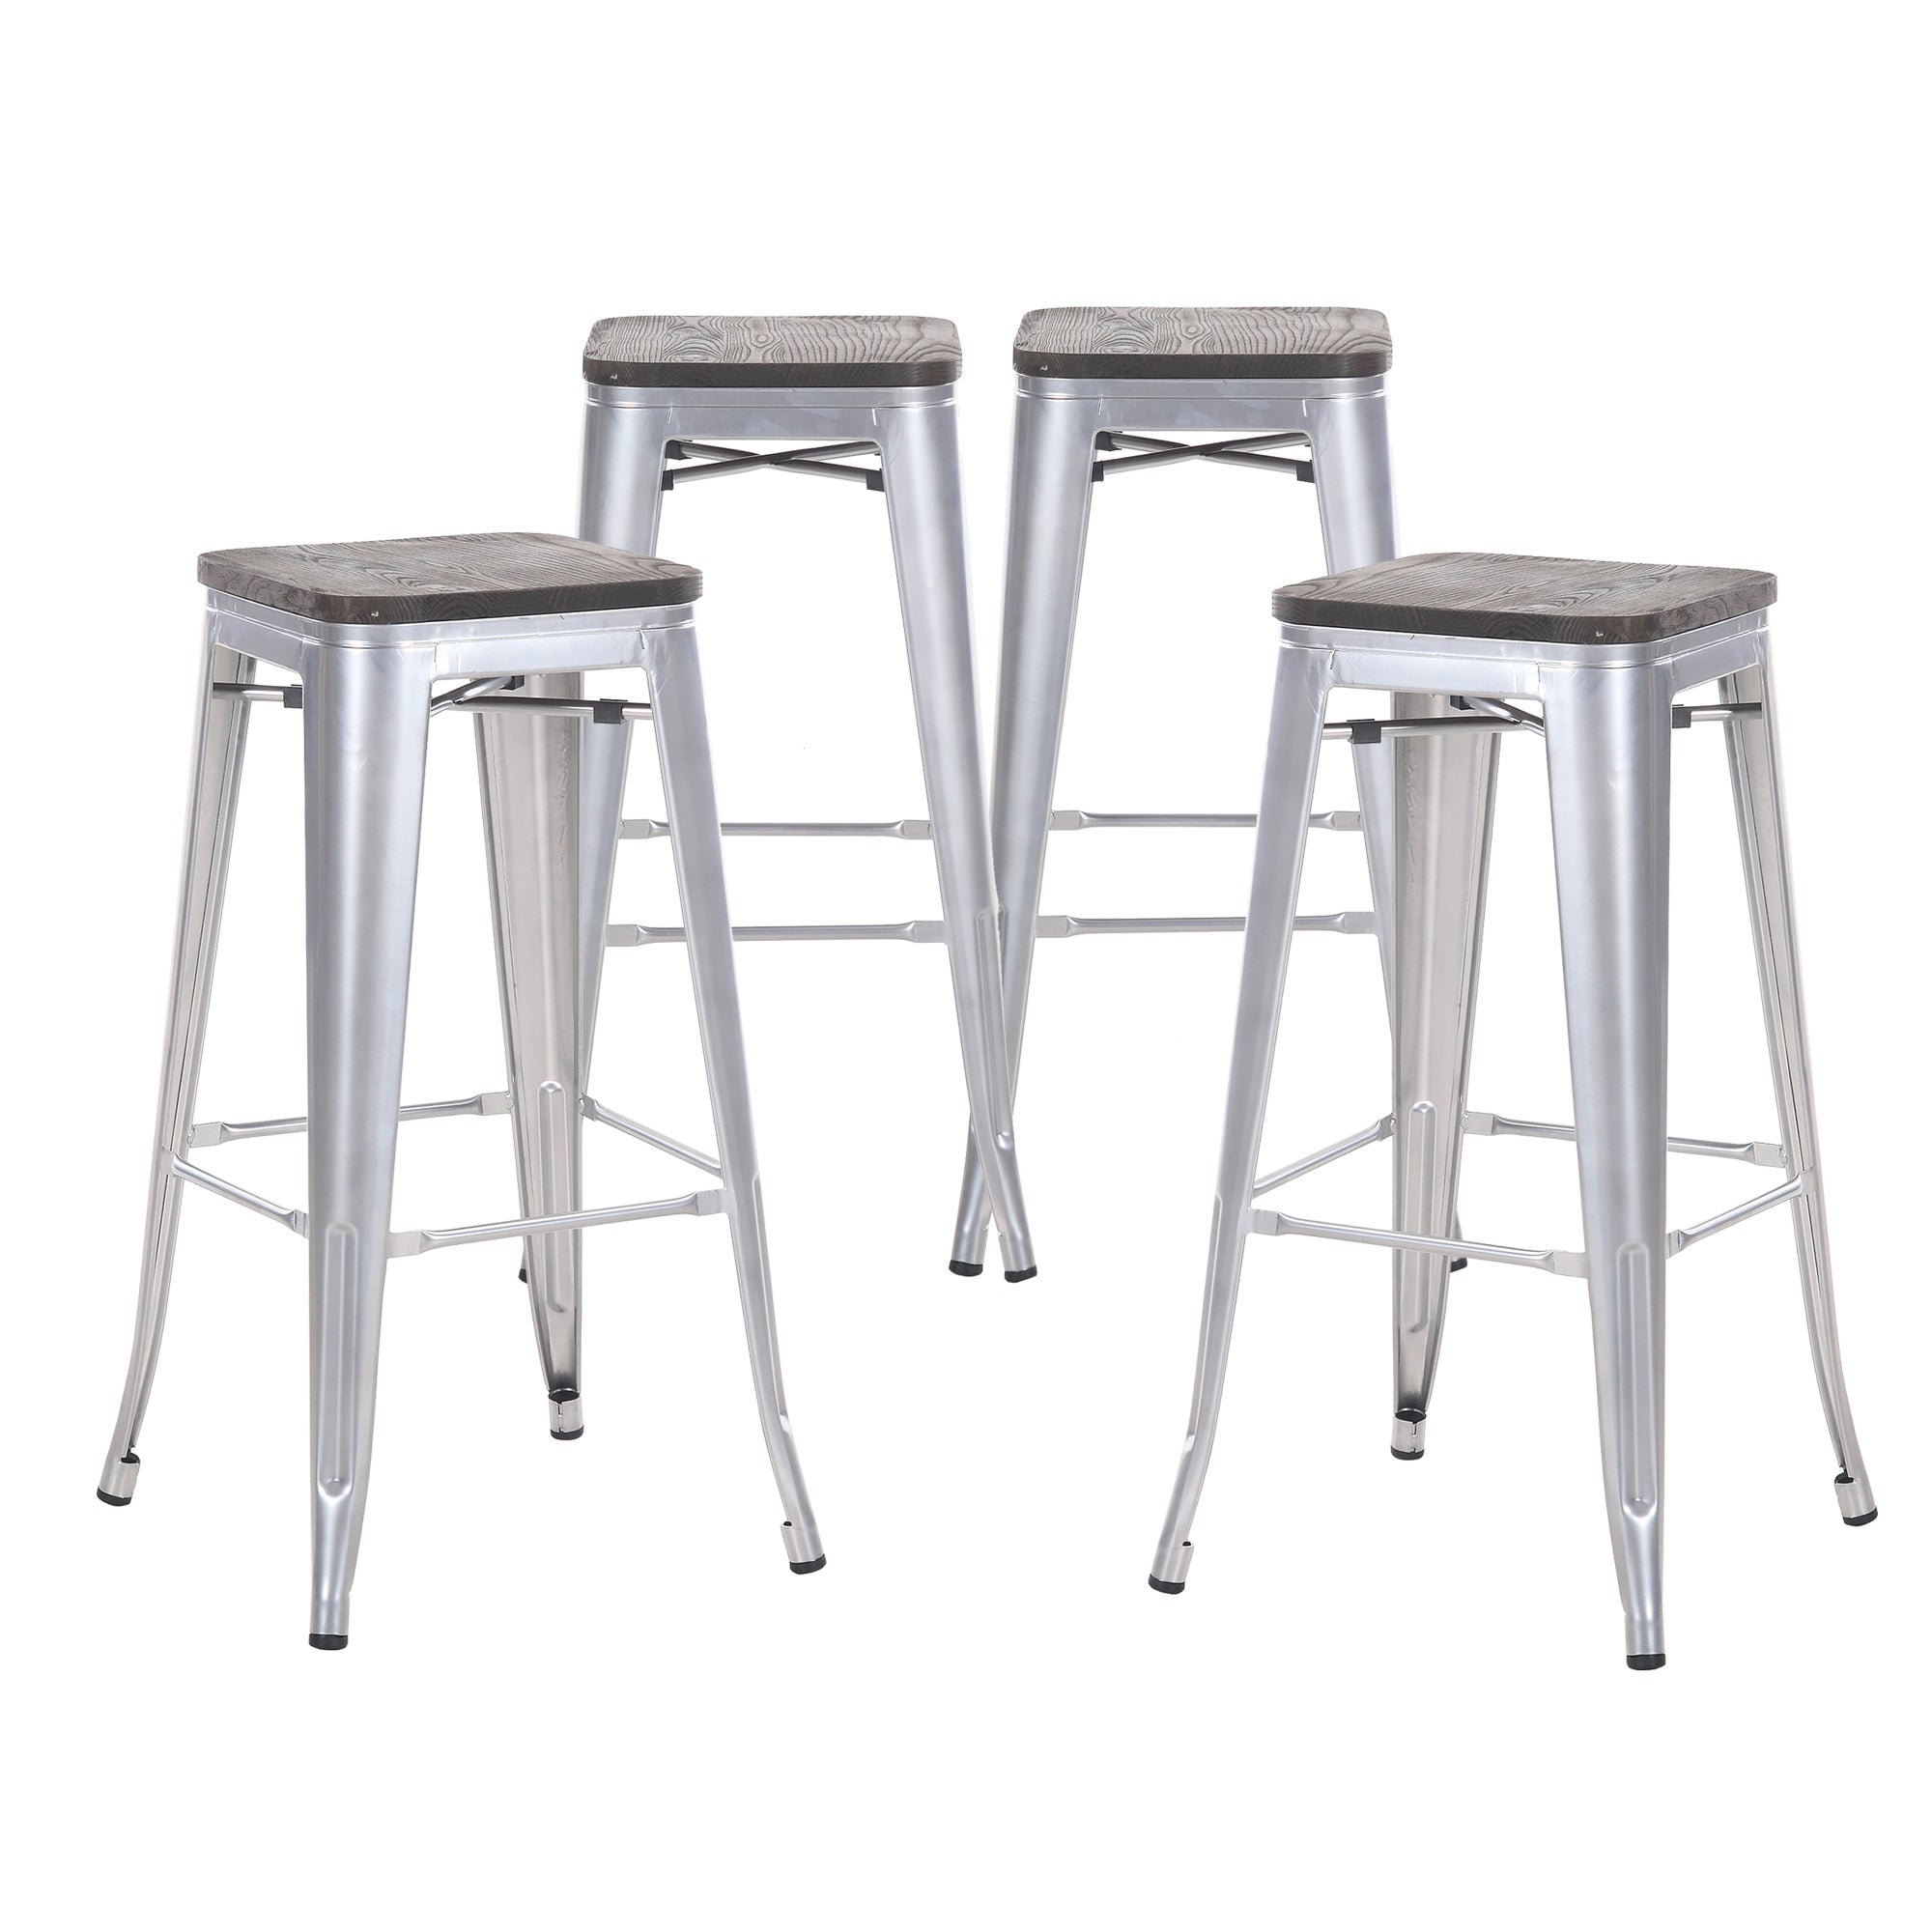 Buschman Set Of 4 Grey Wooden Seat 30 Inch Bar Height Metal Bar